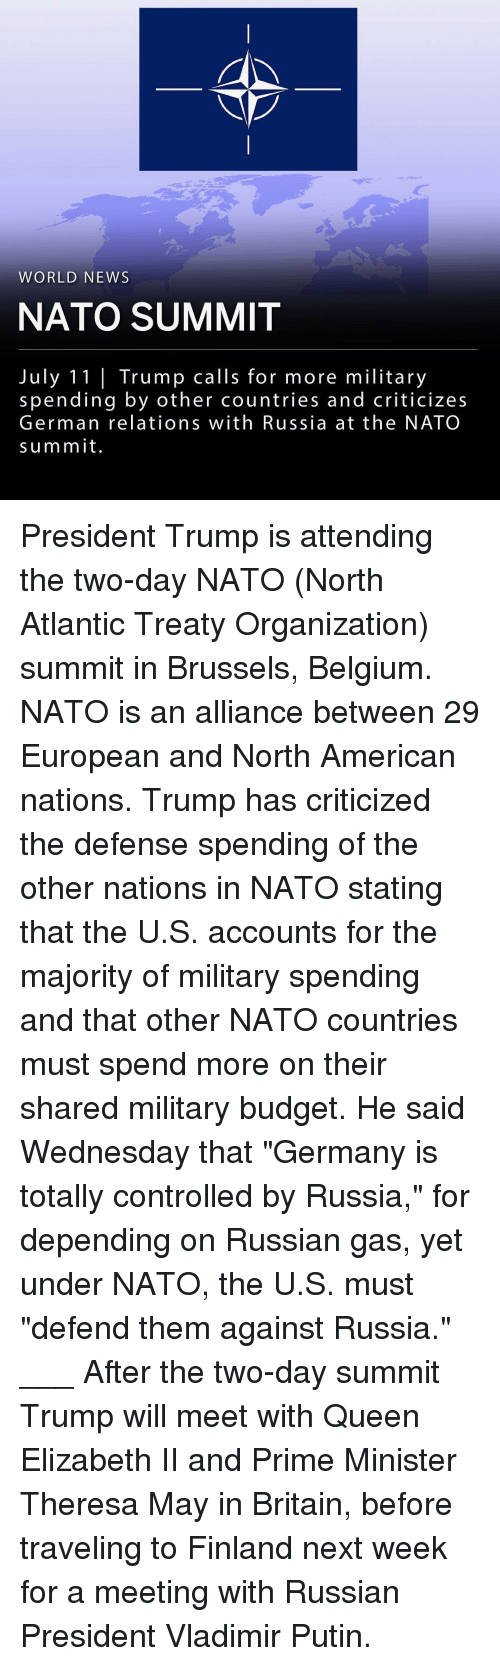 "Belgium, Memes, and News: WORLD NEWS  NATO SUMMIT  July 11| Trump calls for more military  spending by other countries and criticizes  German relations with Russia at the NATO  summit President Trump is attending the two-day NATO (North Atlantic Treaty Organization) summit in Brussels, Belgium. NATO is an alliance between 29 European and North American nations. Trump has criticized the defense spending of the other nations in NATO stating that the U.S. accounts for the majority of military spending and that other NATO countries must spend more on their shared military budget. He said Wednesday that ""Germany is totally controlled by Russia,"" for depending on Russian gas, yet under NATO, the U.S. must ""defend them against Russia."" ___ After the two-day summit Trump will meet with Queen Elizabeth II and Prime Minister Theresa May in Britain, before traveling to Finland next week for a meeting with Russian President Vladimir Putin."